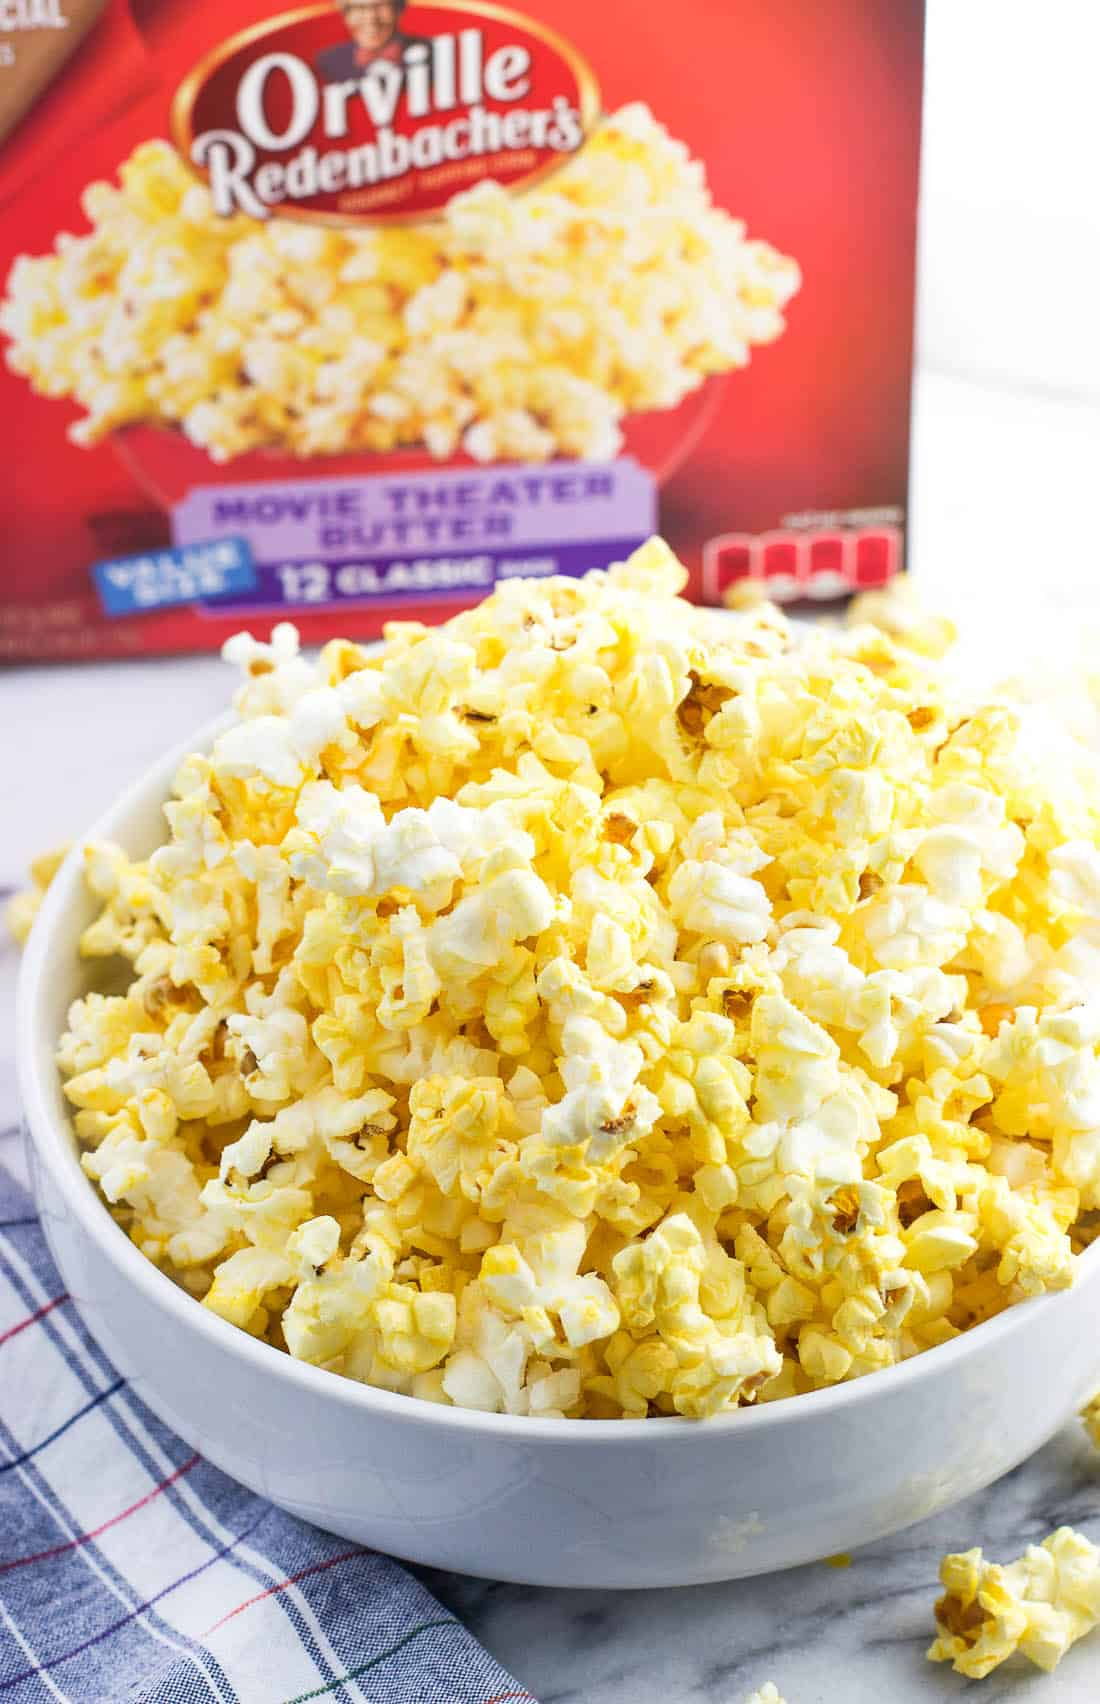 A bowl of popped popcorn next to the Orville Redenbacher's box